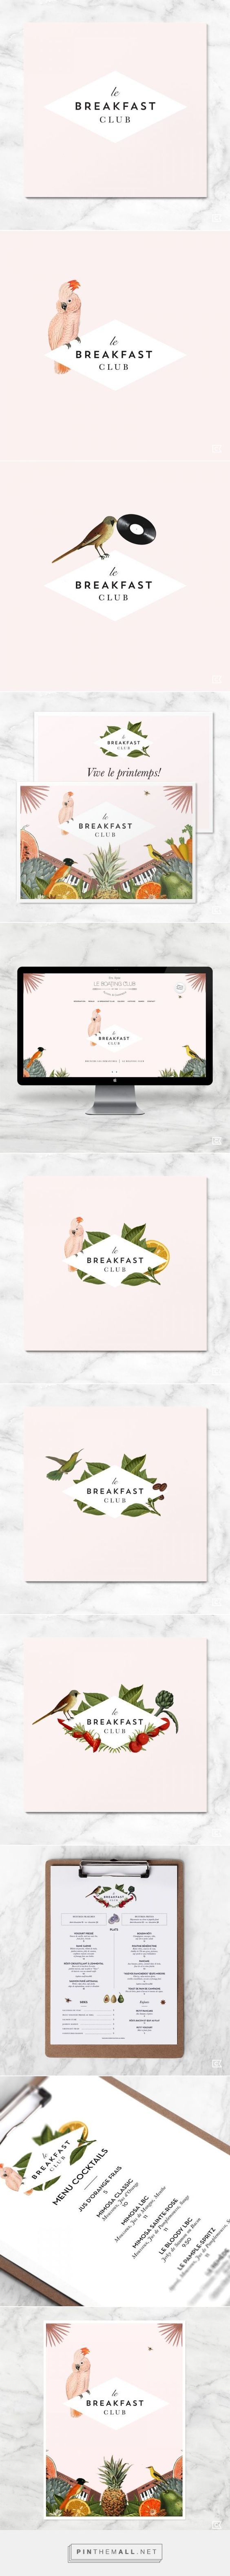 Le Breakfast Club Branding on Behance | Fivestar Branding – Design and Branding Agency & Inspiration Gallery